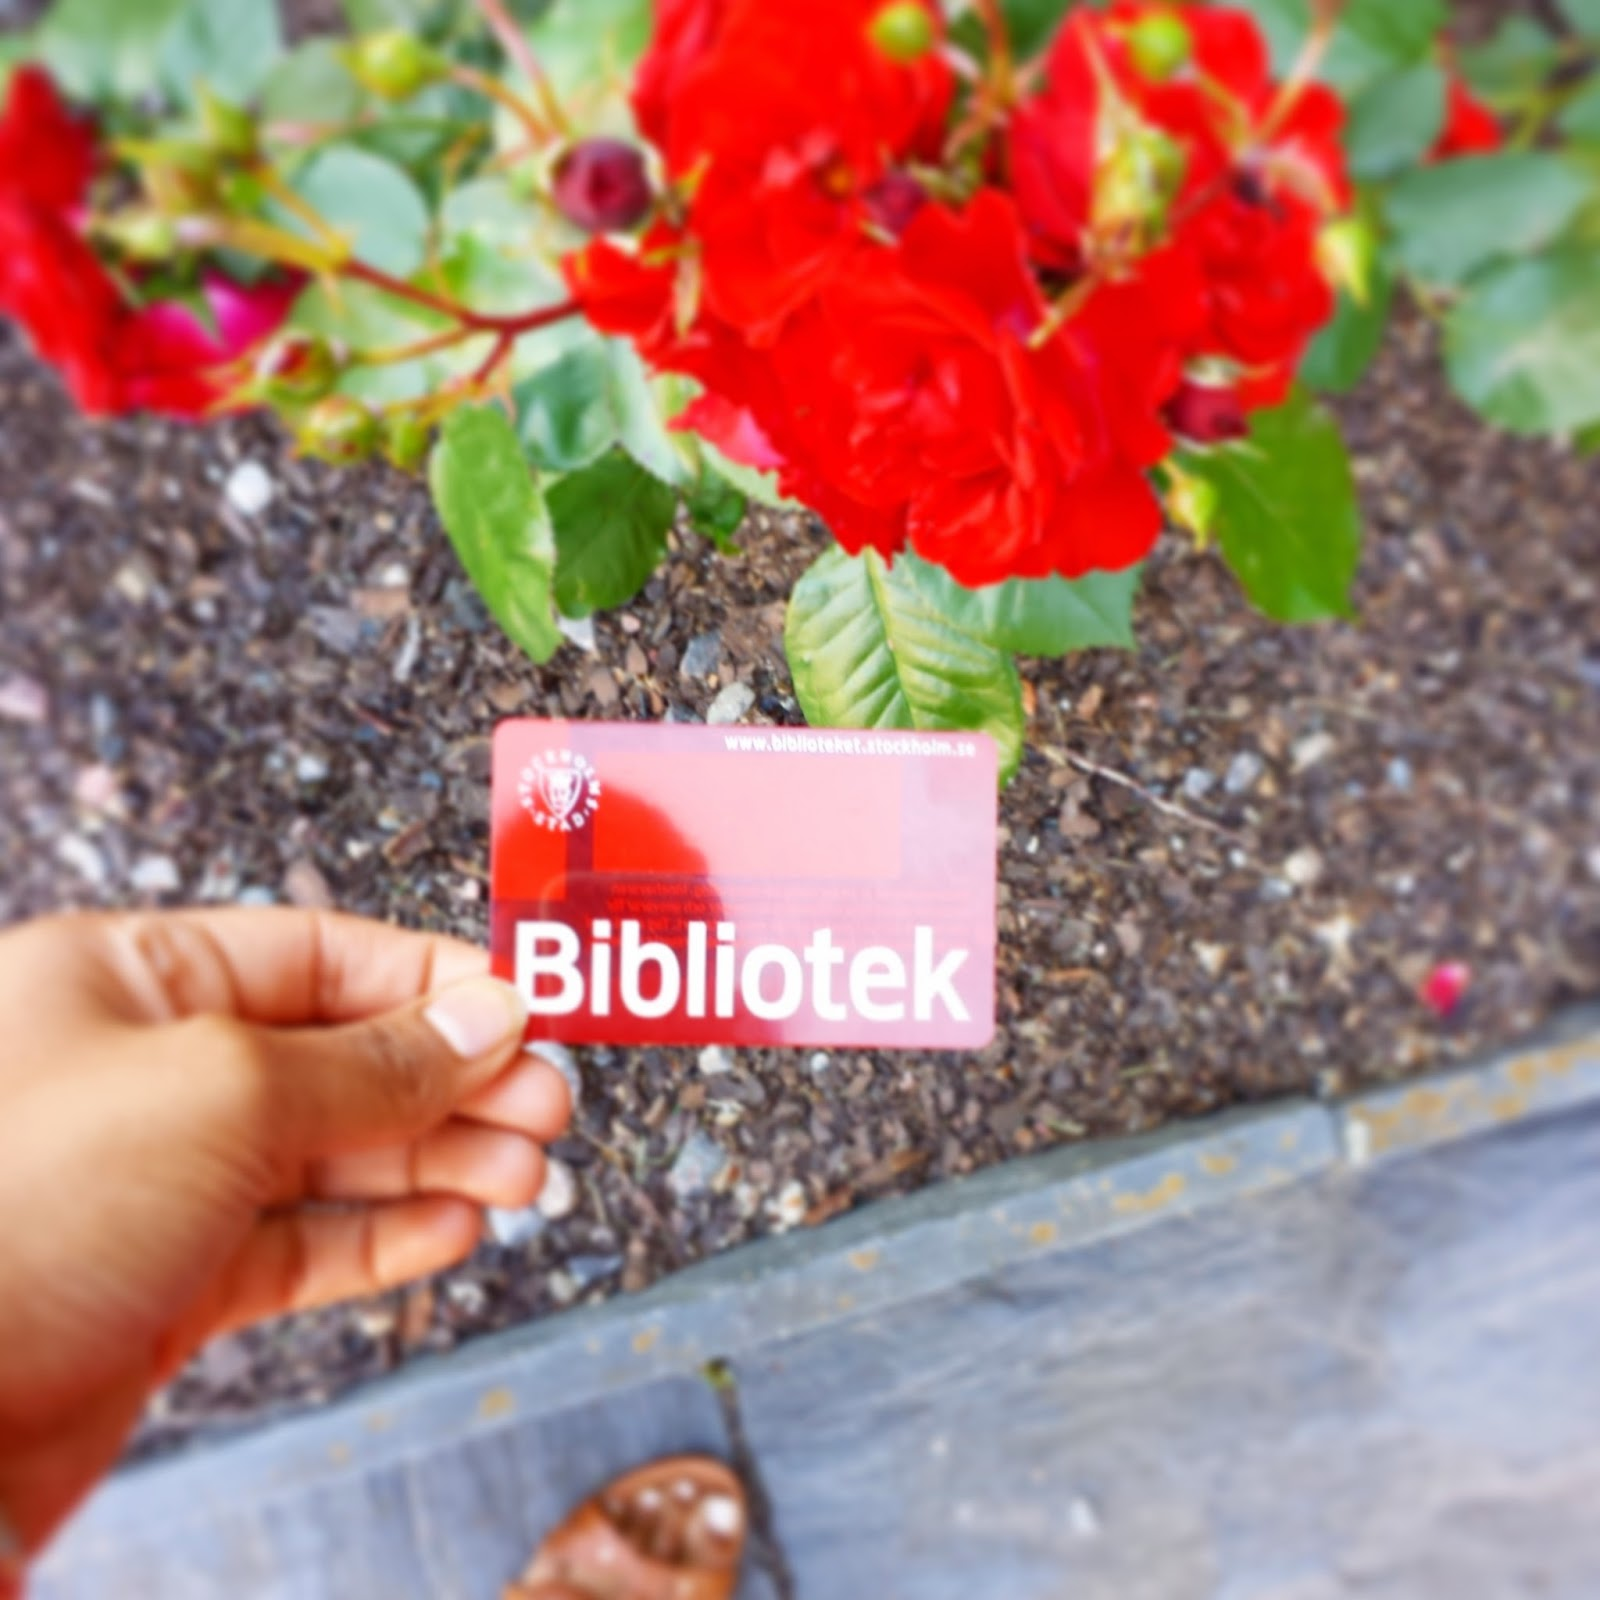 Stockholm stadsbibliotek kort (City of Stockholm Library Card)  |  Our first July 4th abroad on afeathery*nest  |  http://afeatherynest.blogspot.com